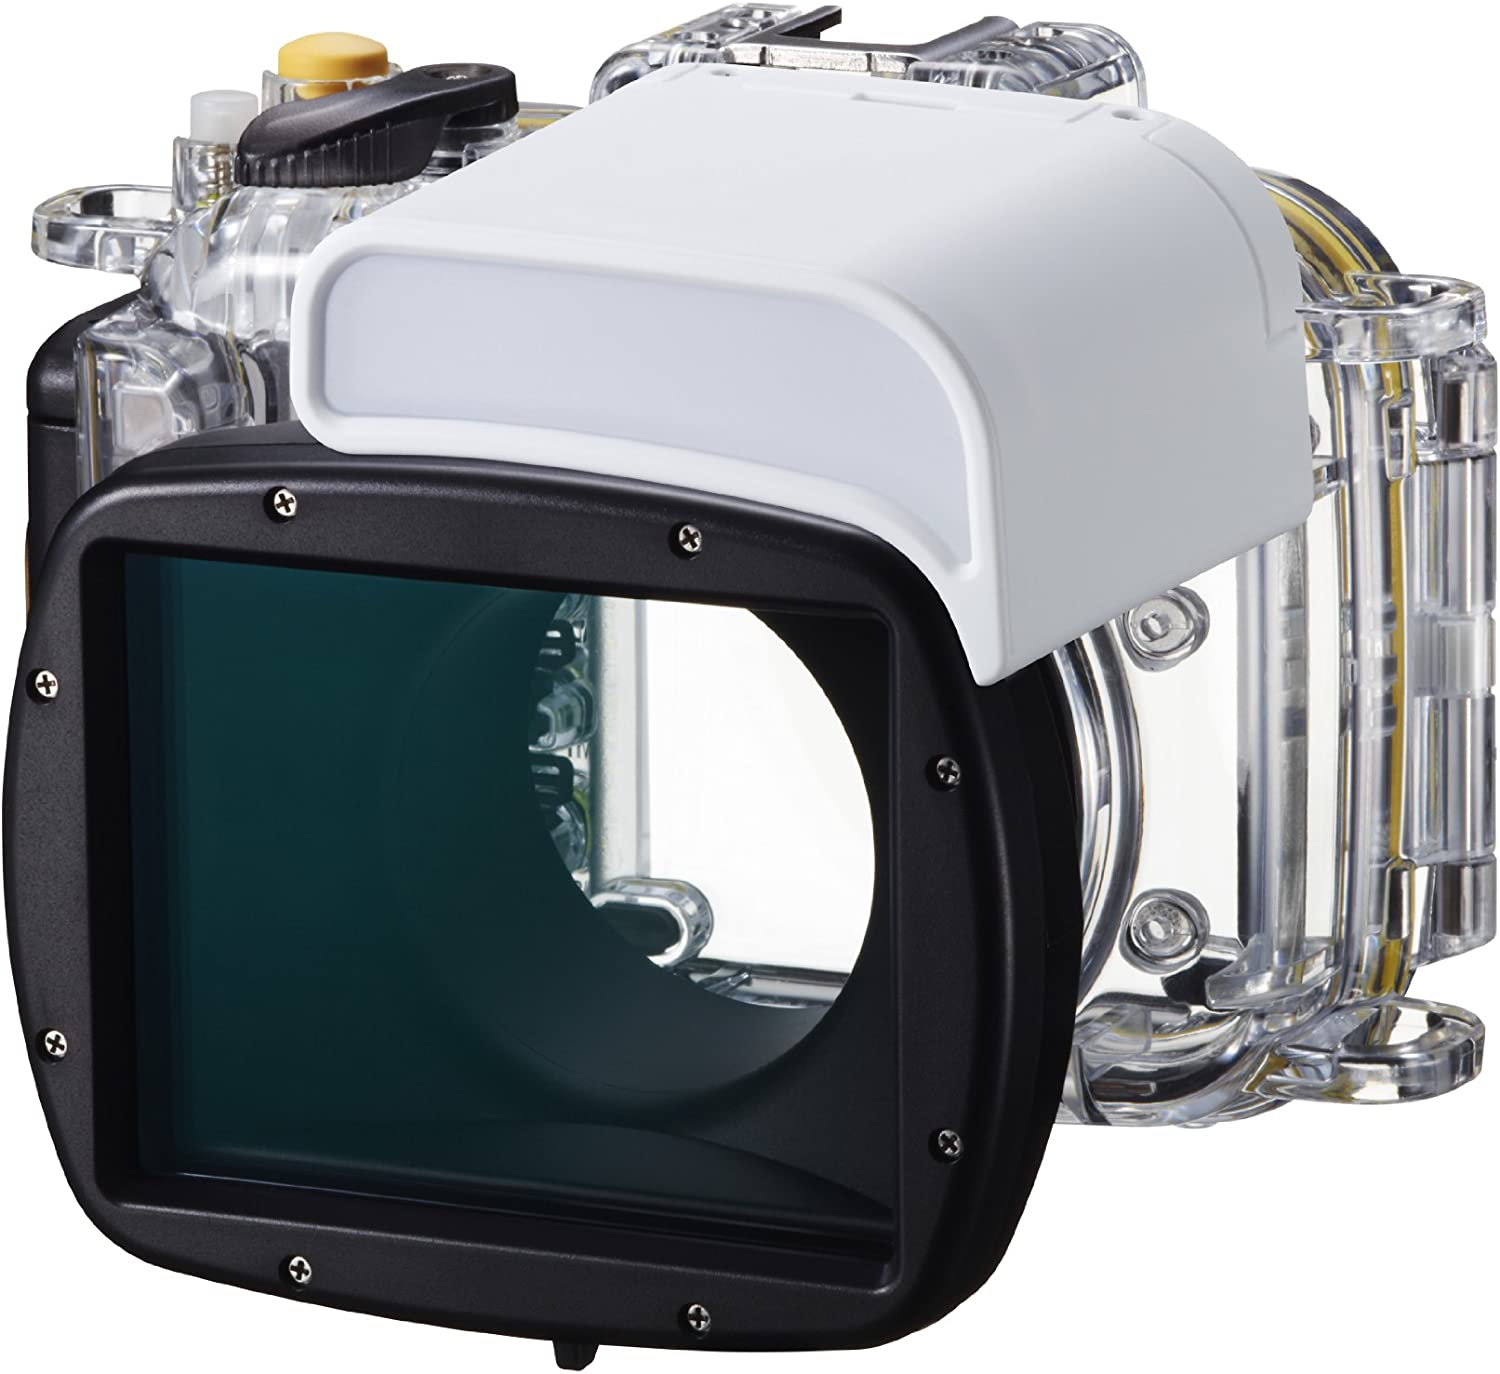 Canon WP-DC49 Waterproof Case for PowerShot SX270, SX280